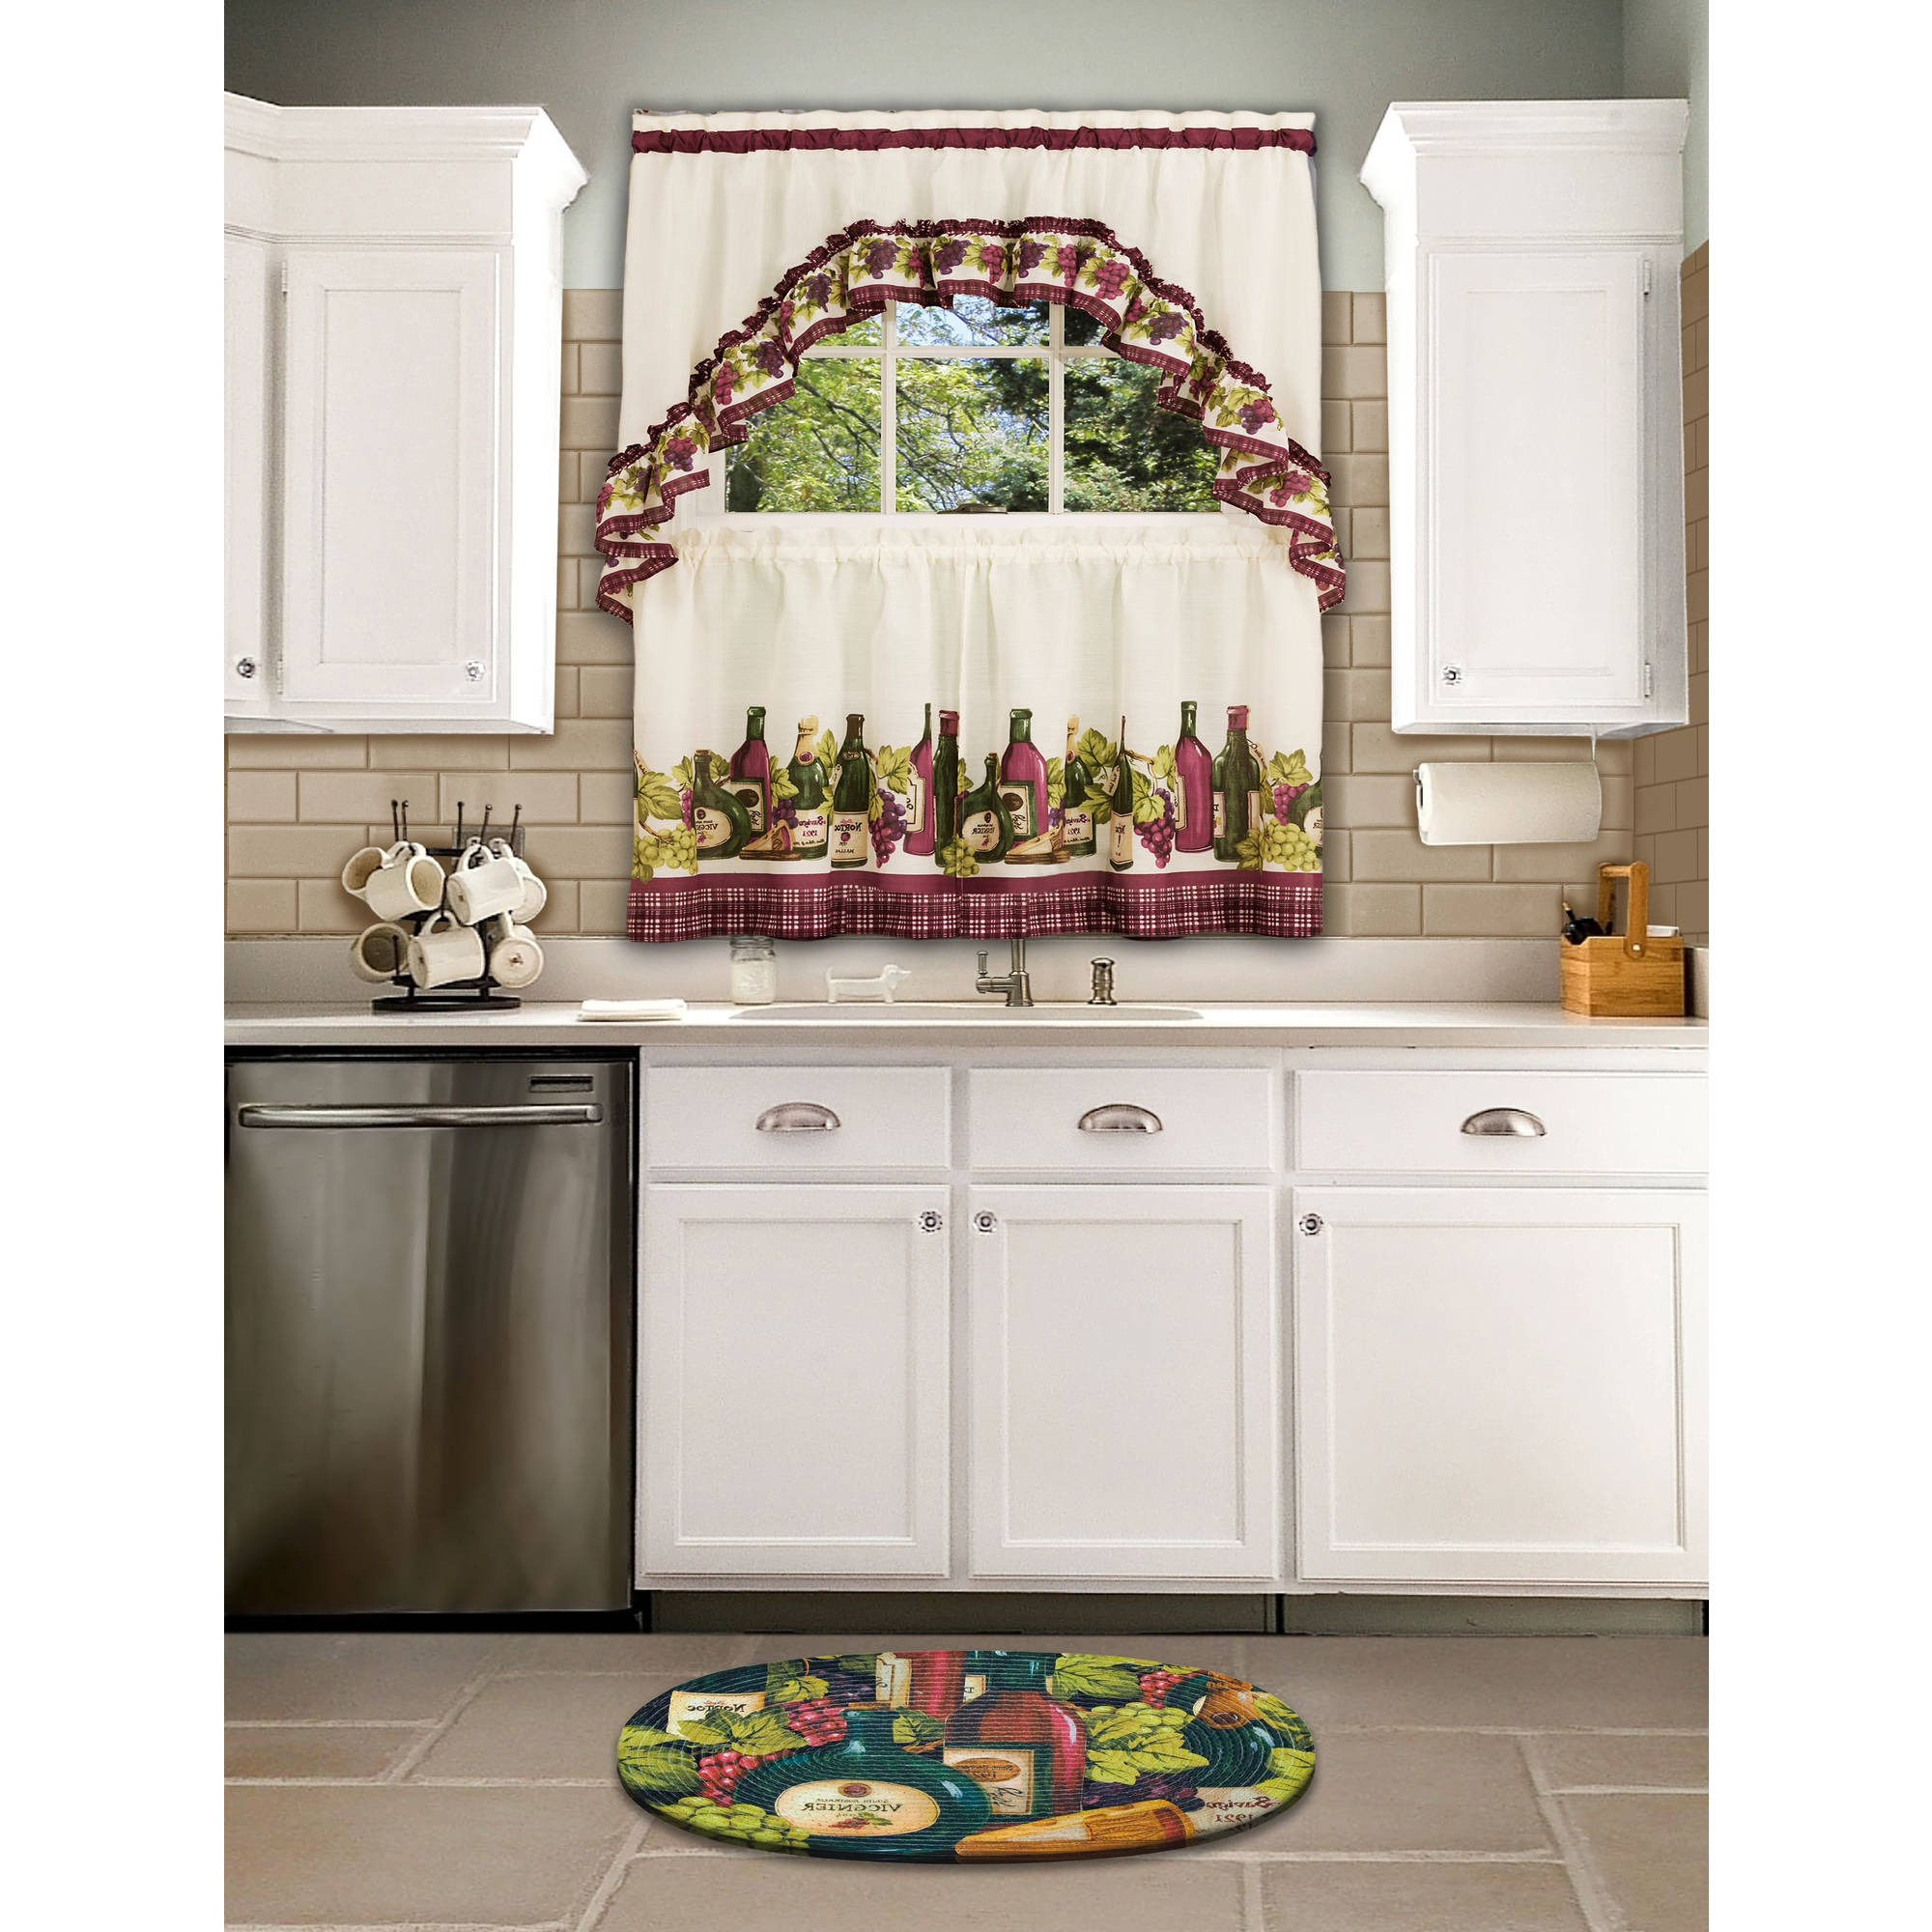 Chardonnay Tier And Swag Kitchen Curtain Sets Throughout Well Known Chardonnay Kitchen Curtain & Swag Set, 1 Each (View 6 of 20)